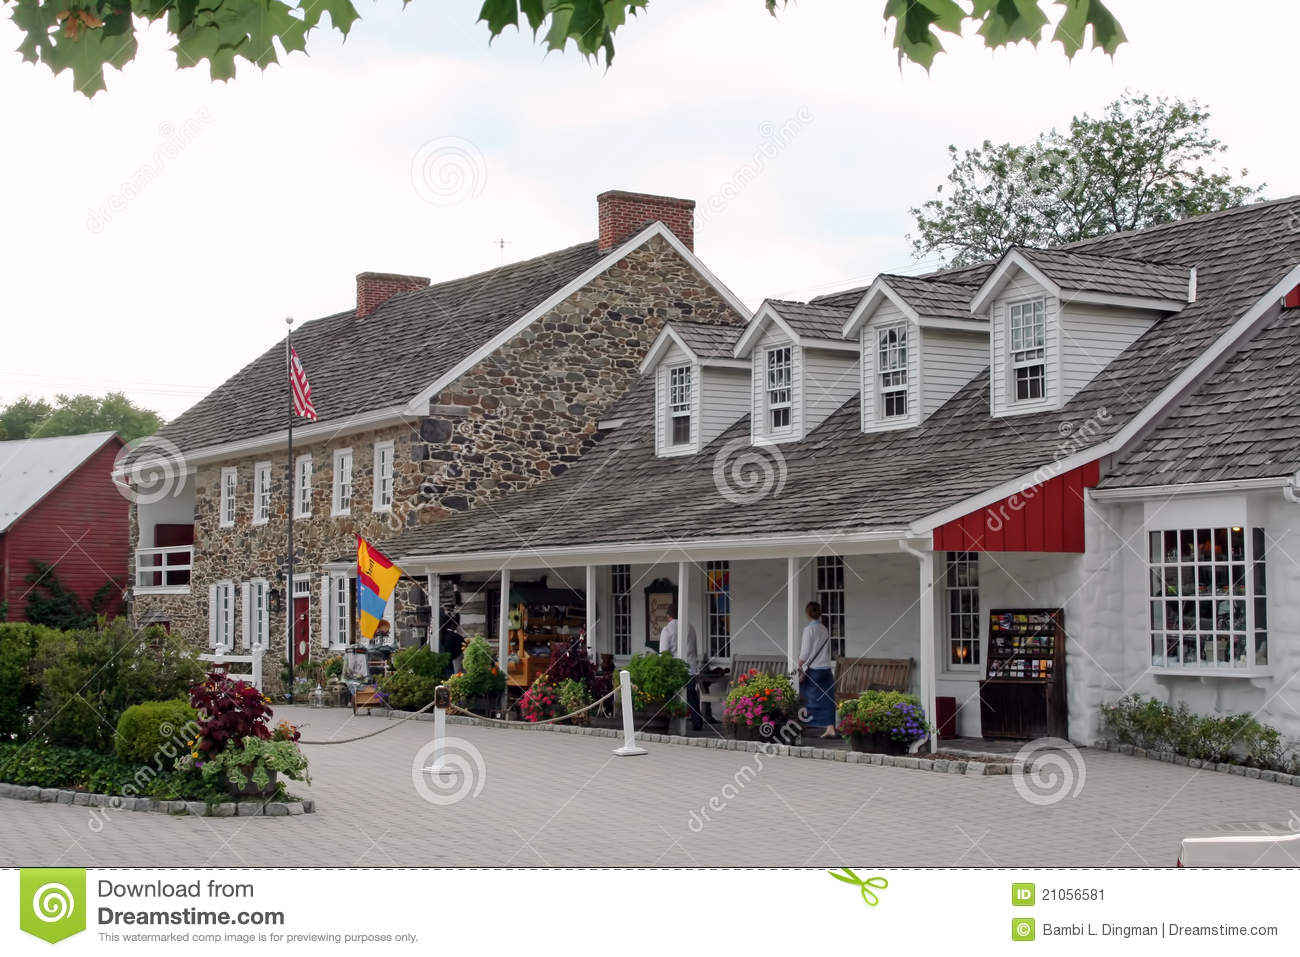 7120398547 likewise Article 122d11db 2c93 5d1d 8450 Fbd7e699136c besides Cleaning Service Customer Satisfaction Survey together with Full Show Friday Mike Gordon Cleveland 2015 moreover Stock Image Dobbin House Tavern Gettystown Inn Image21056581. on pennsylvania house plans